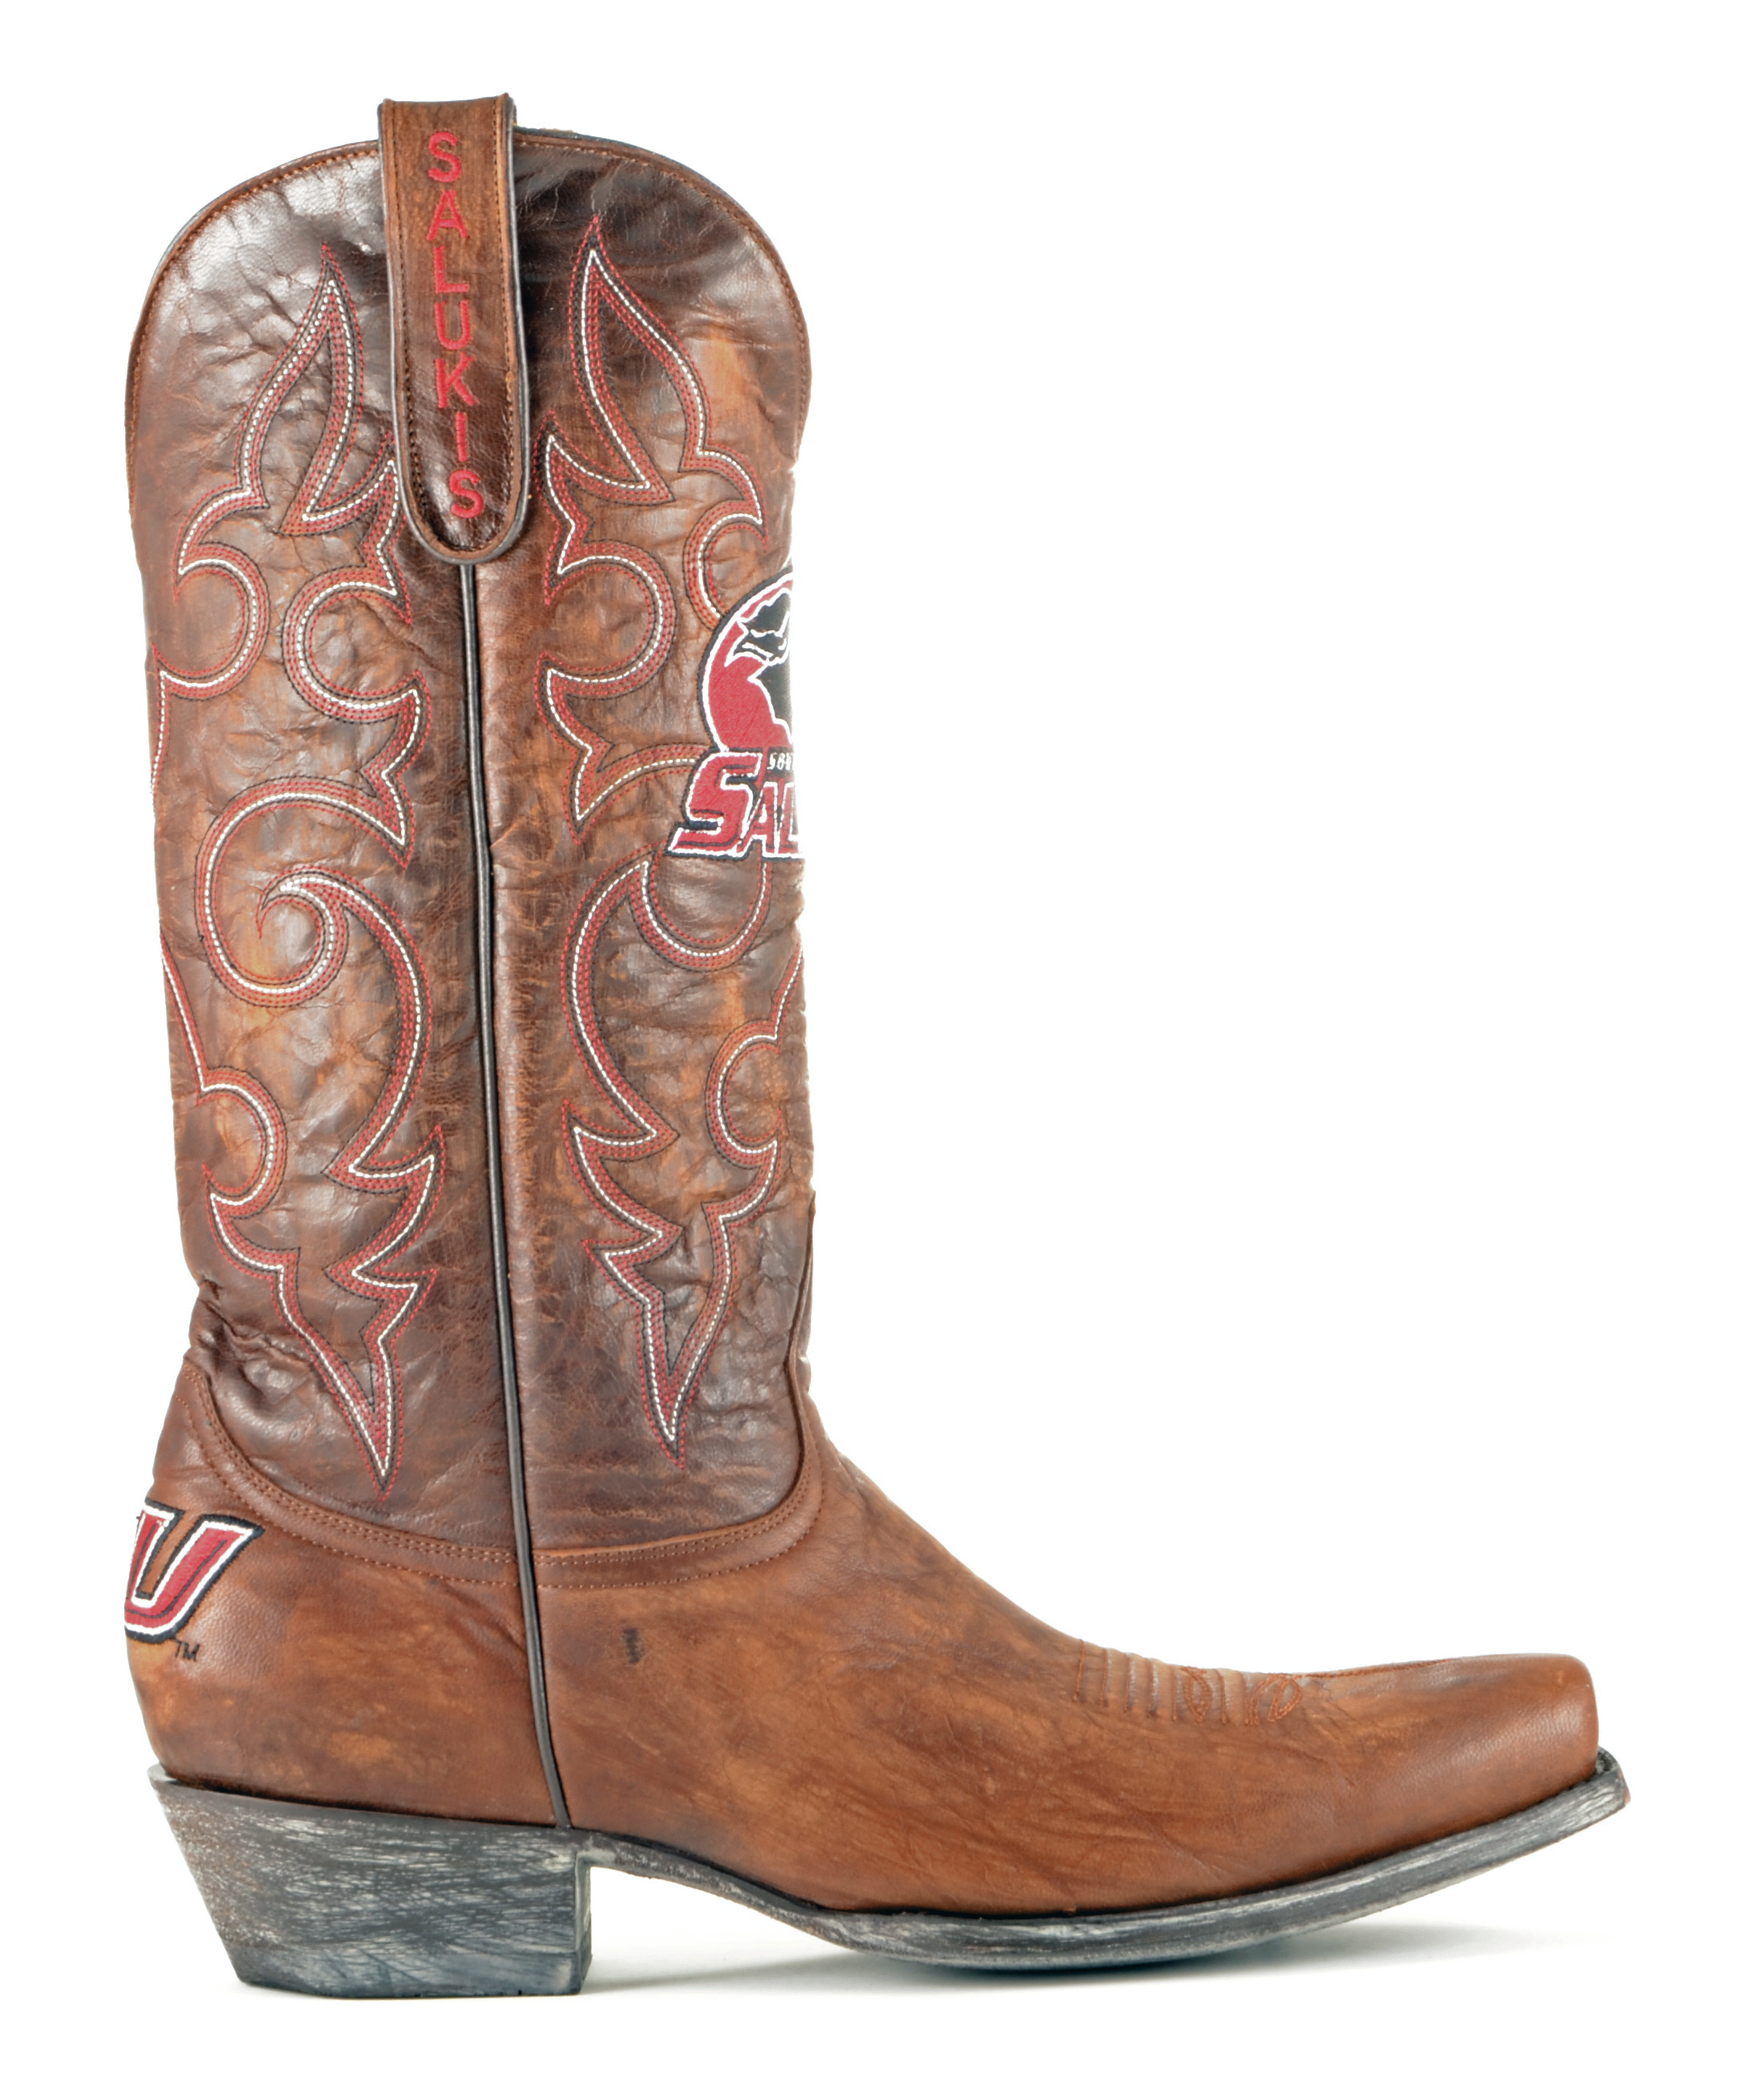 Gameday Boots Leather Southern Illinois Board Room Cowboy Boots